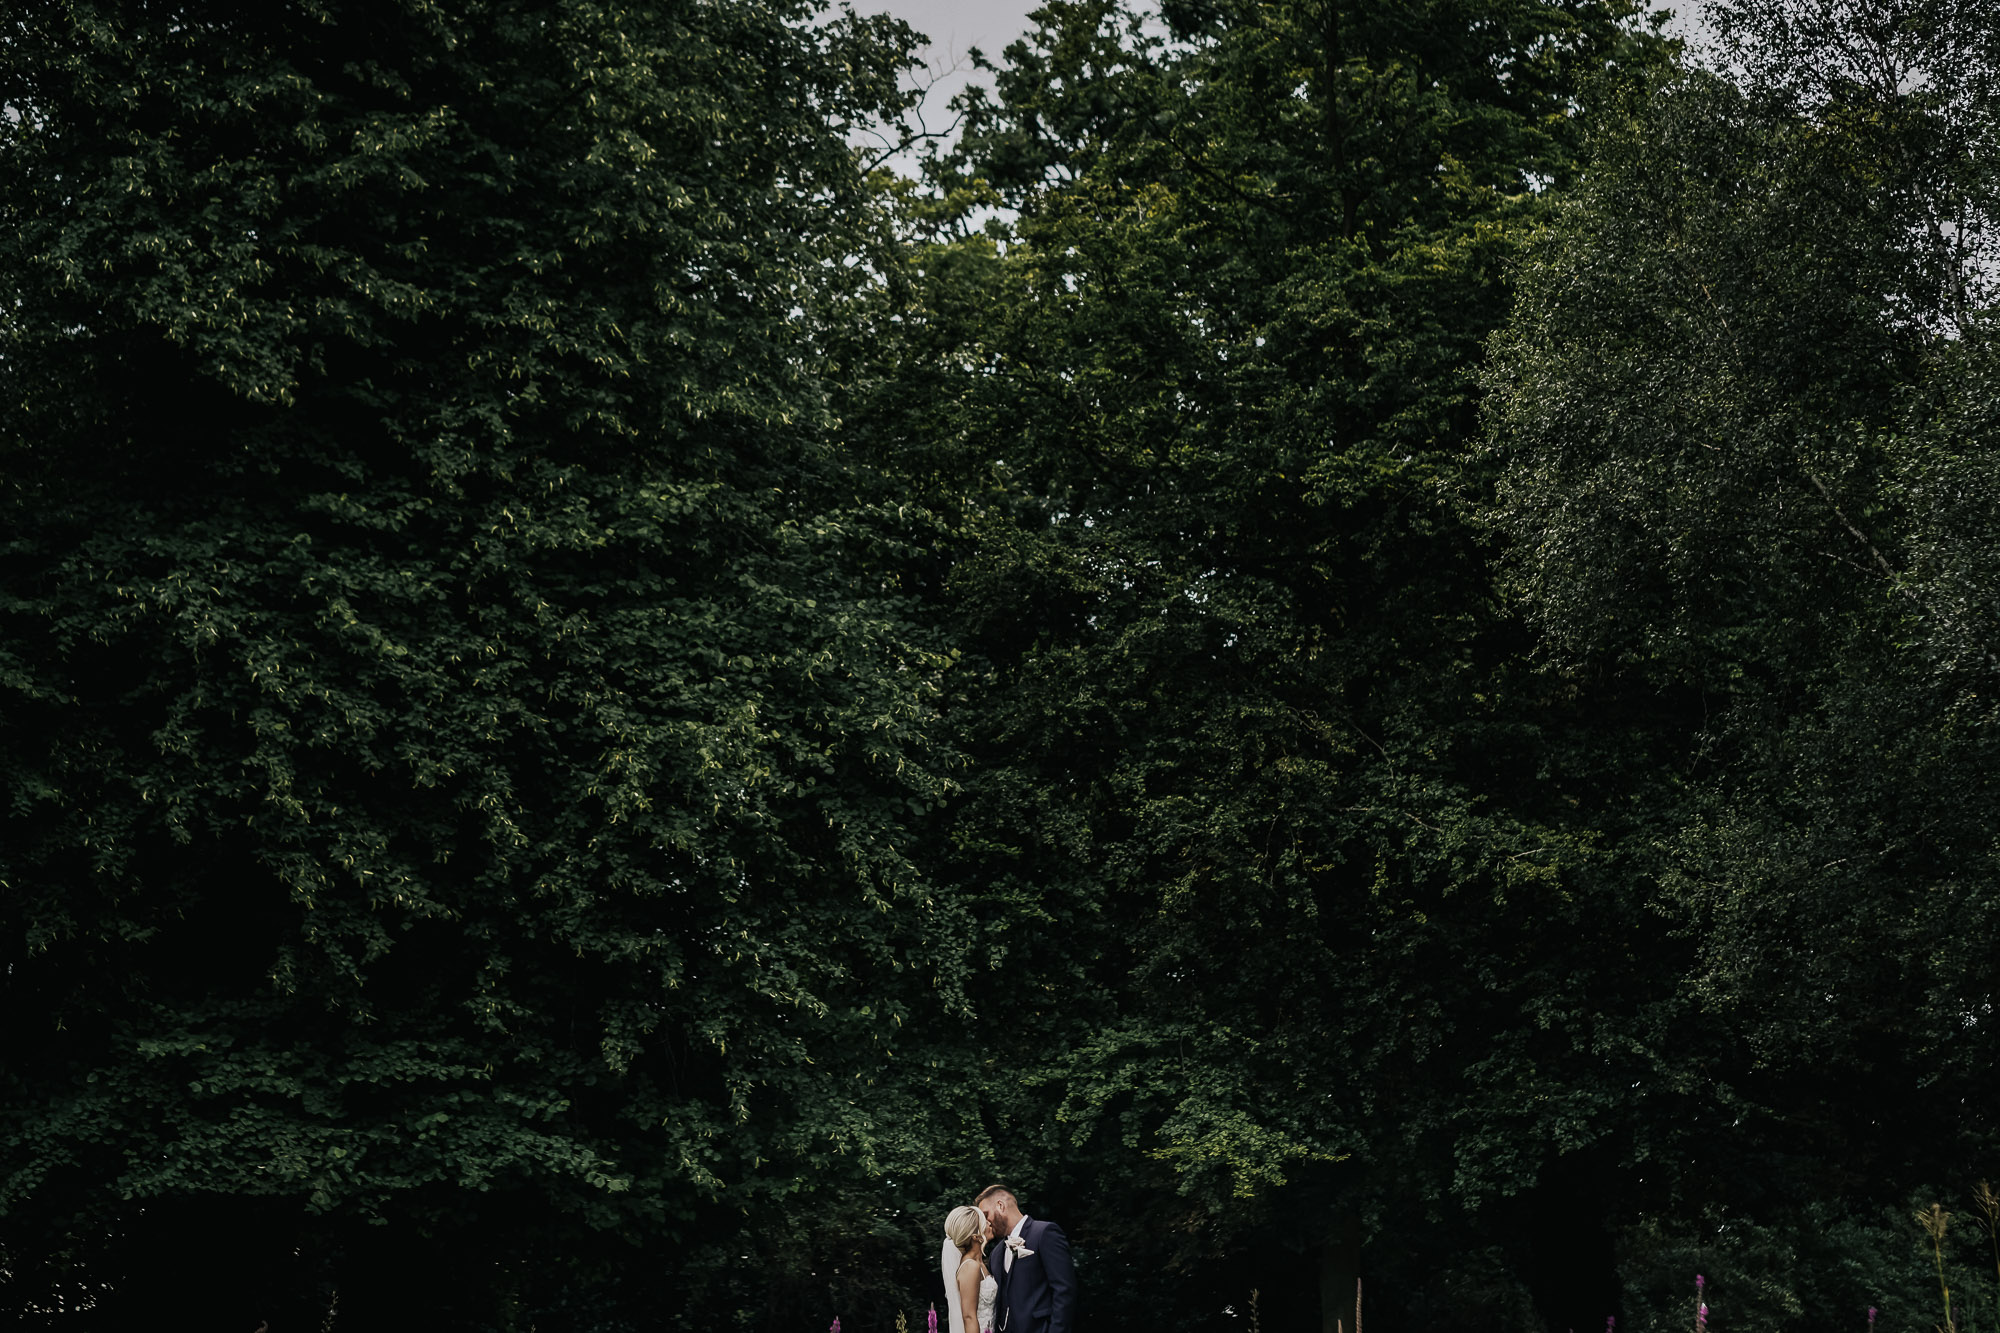 Double Tree By Hilton Chester Wedding Photography cheshire wedding photographer (38 of 59).jpg